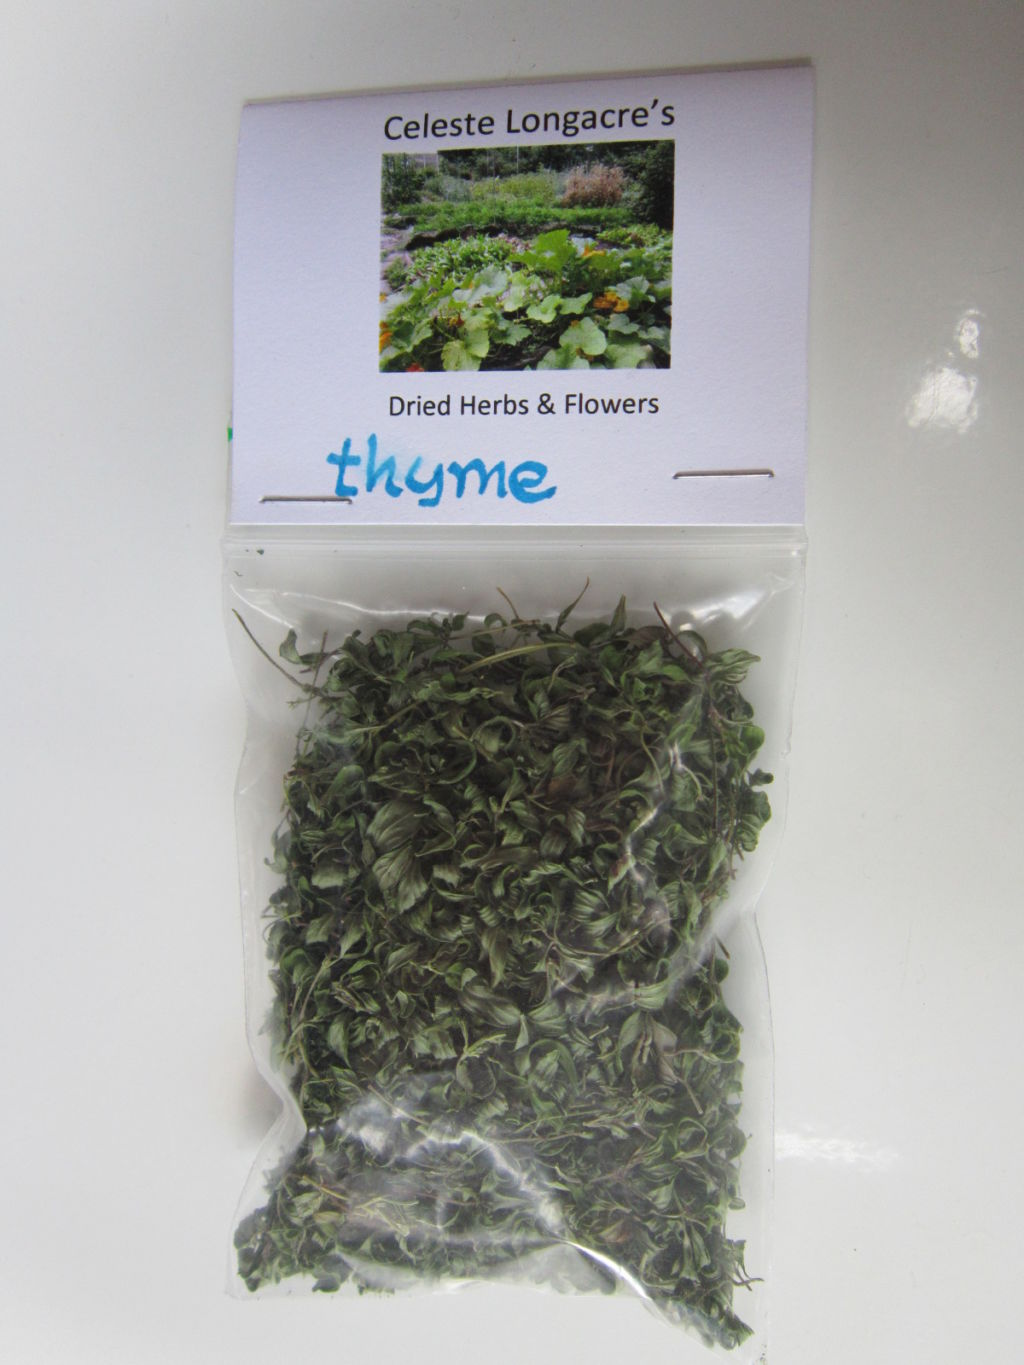 Buy Dried Herbs and Edible Flowers From Celeste's Farm